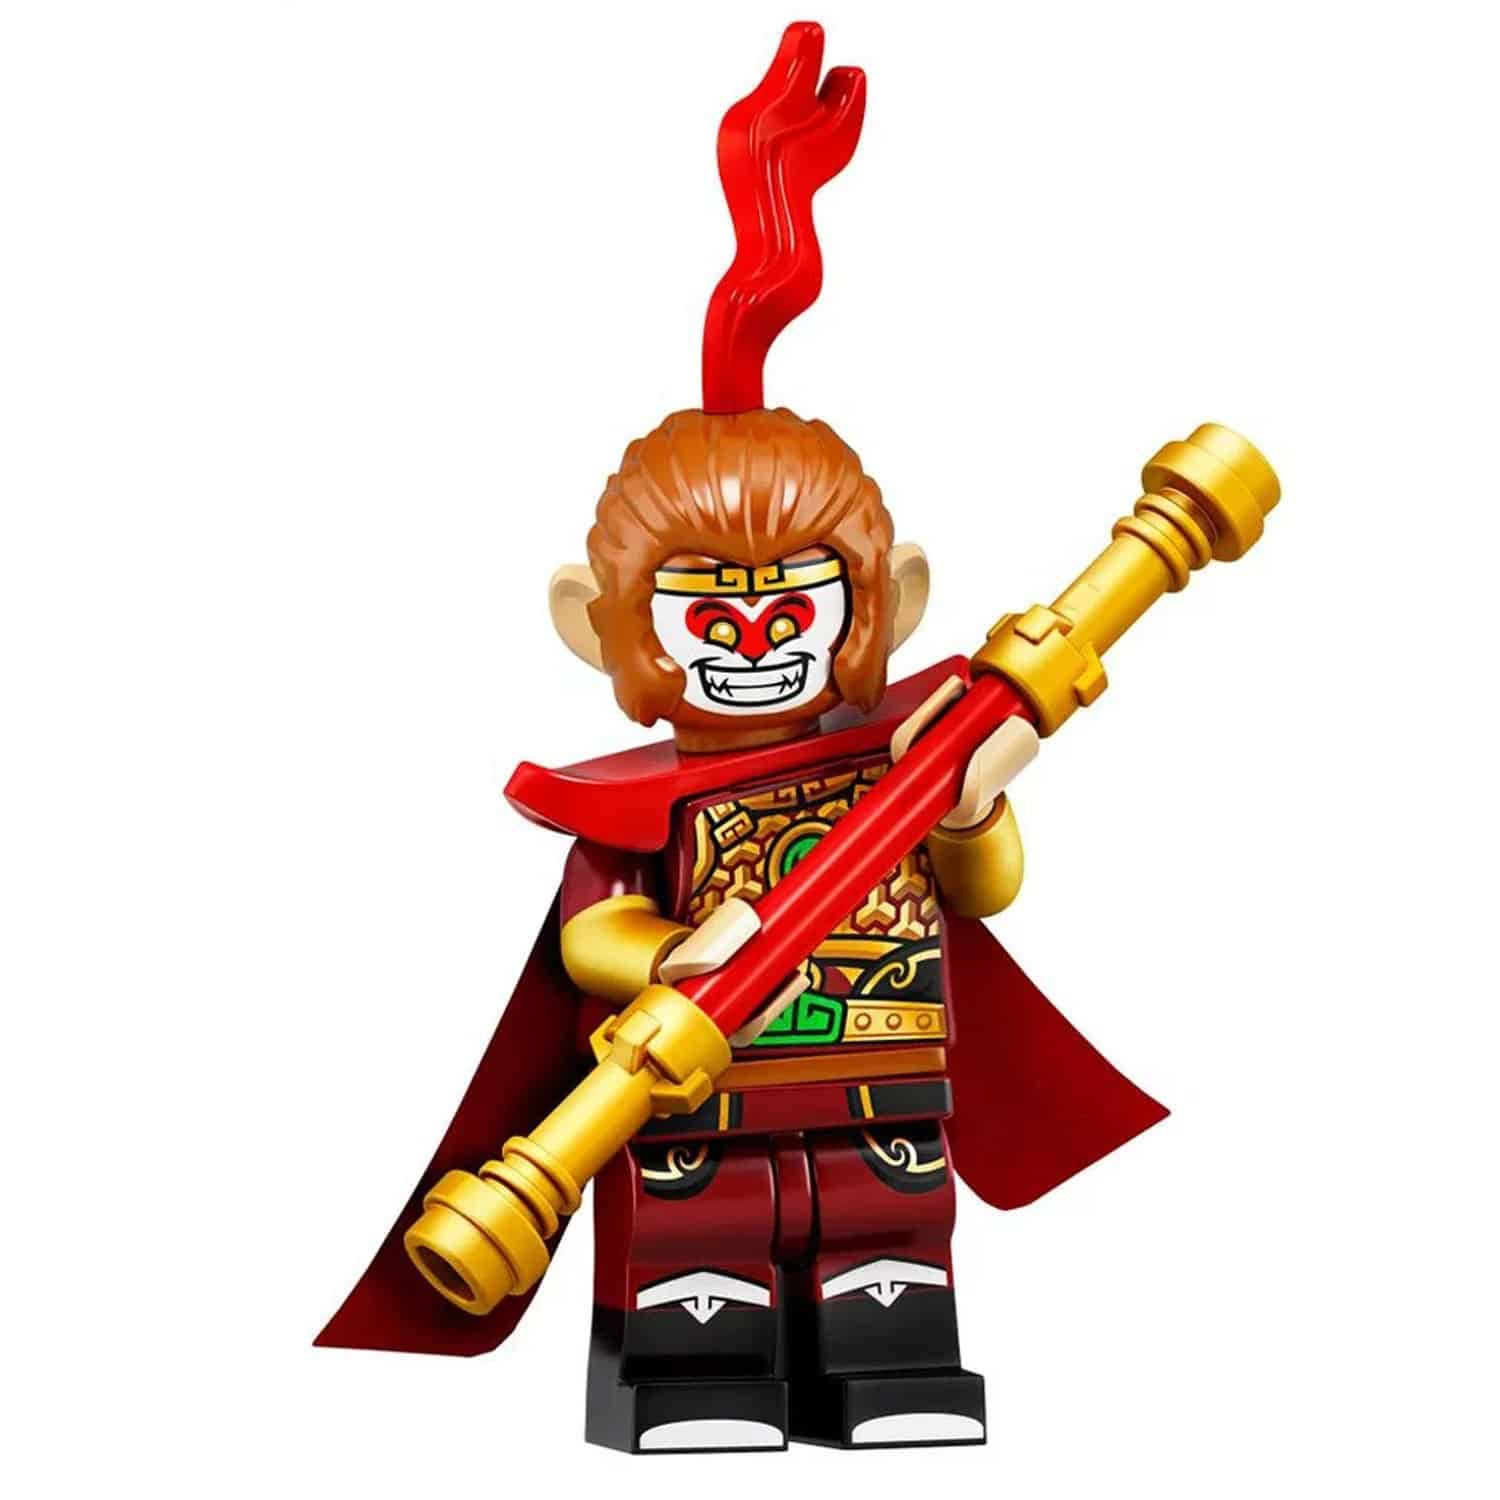 LEGO Monkey King Minifigure – Series 19 CMF